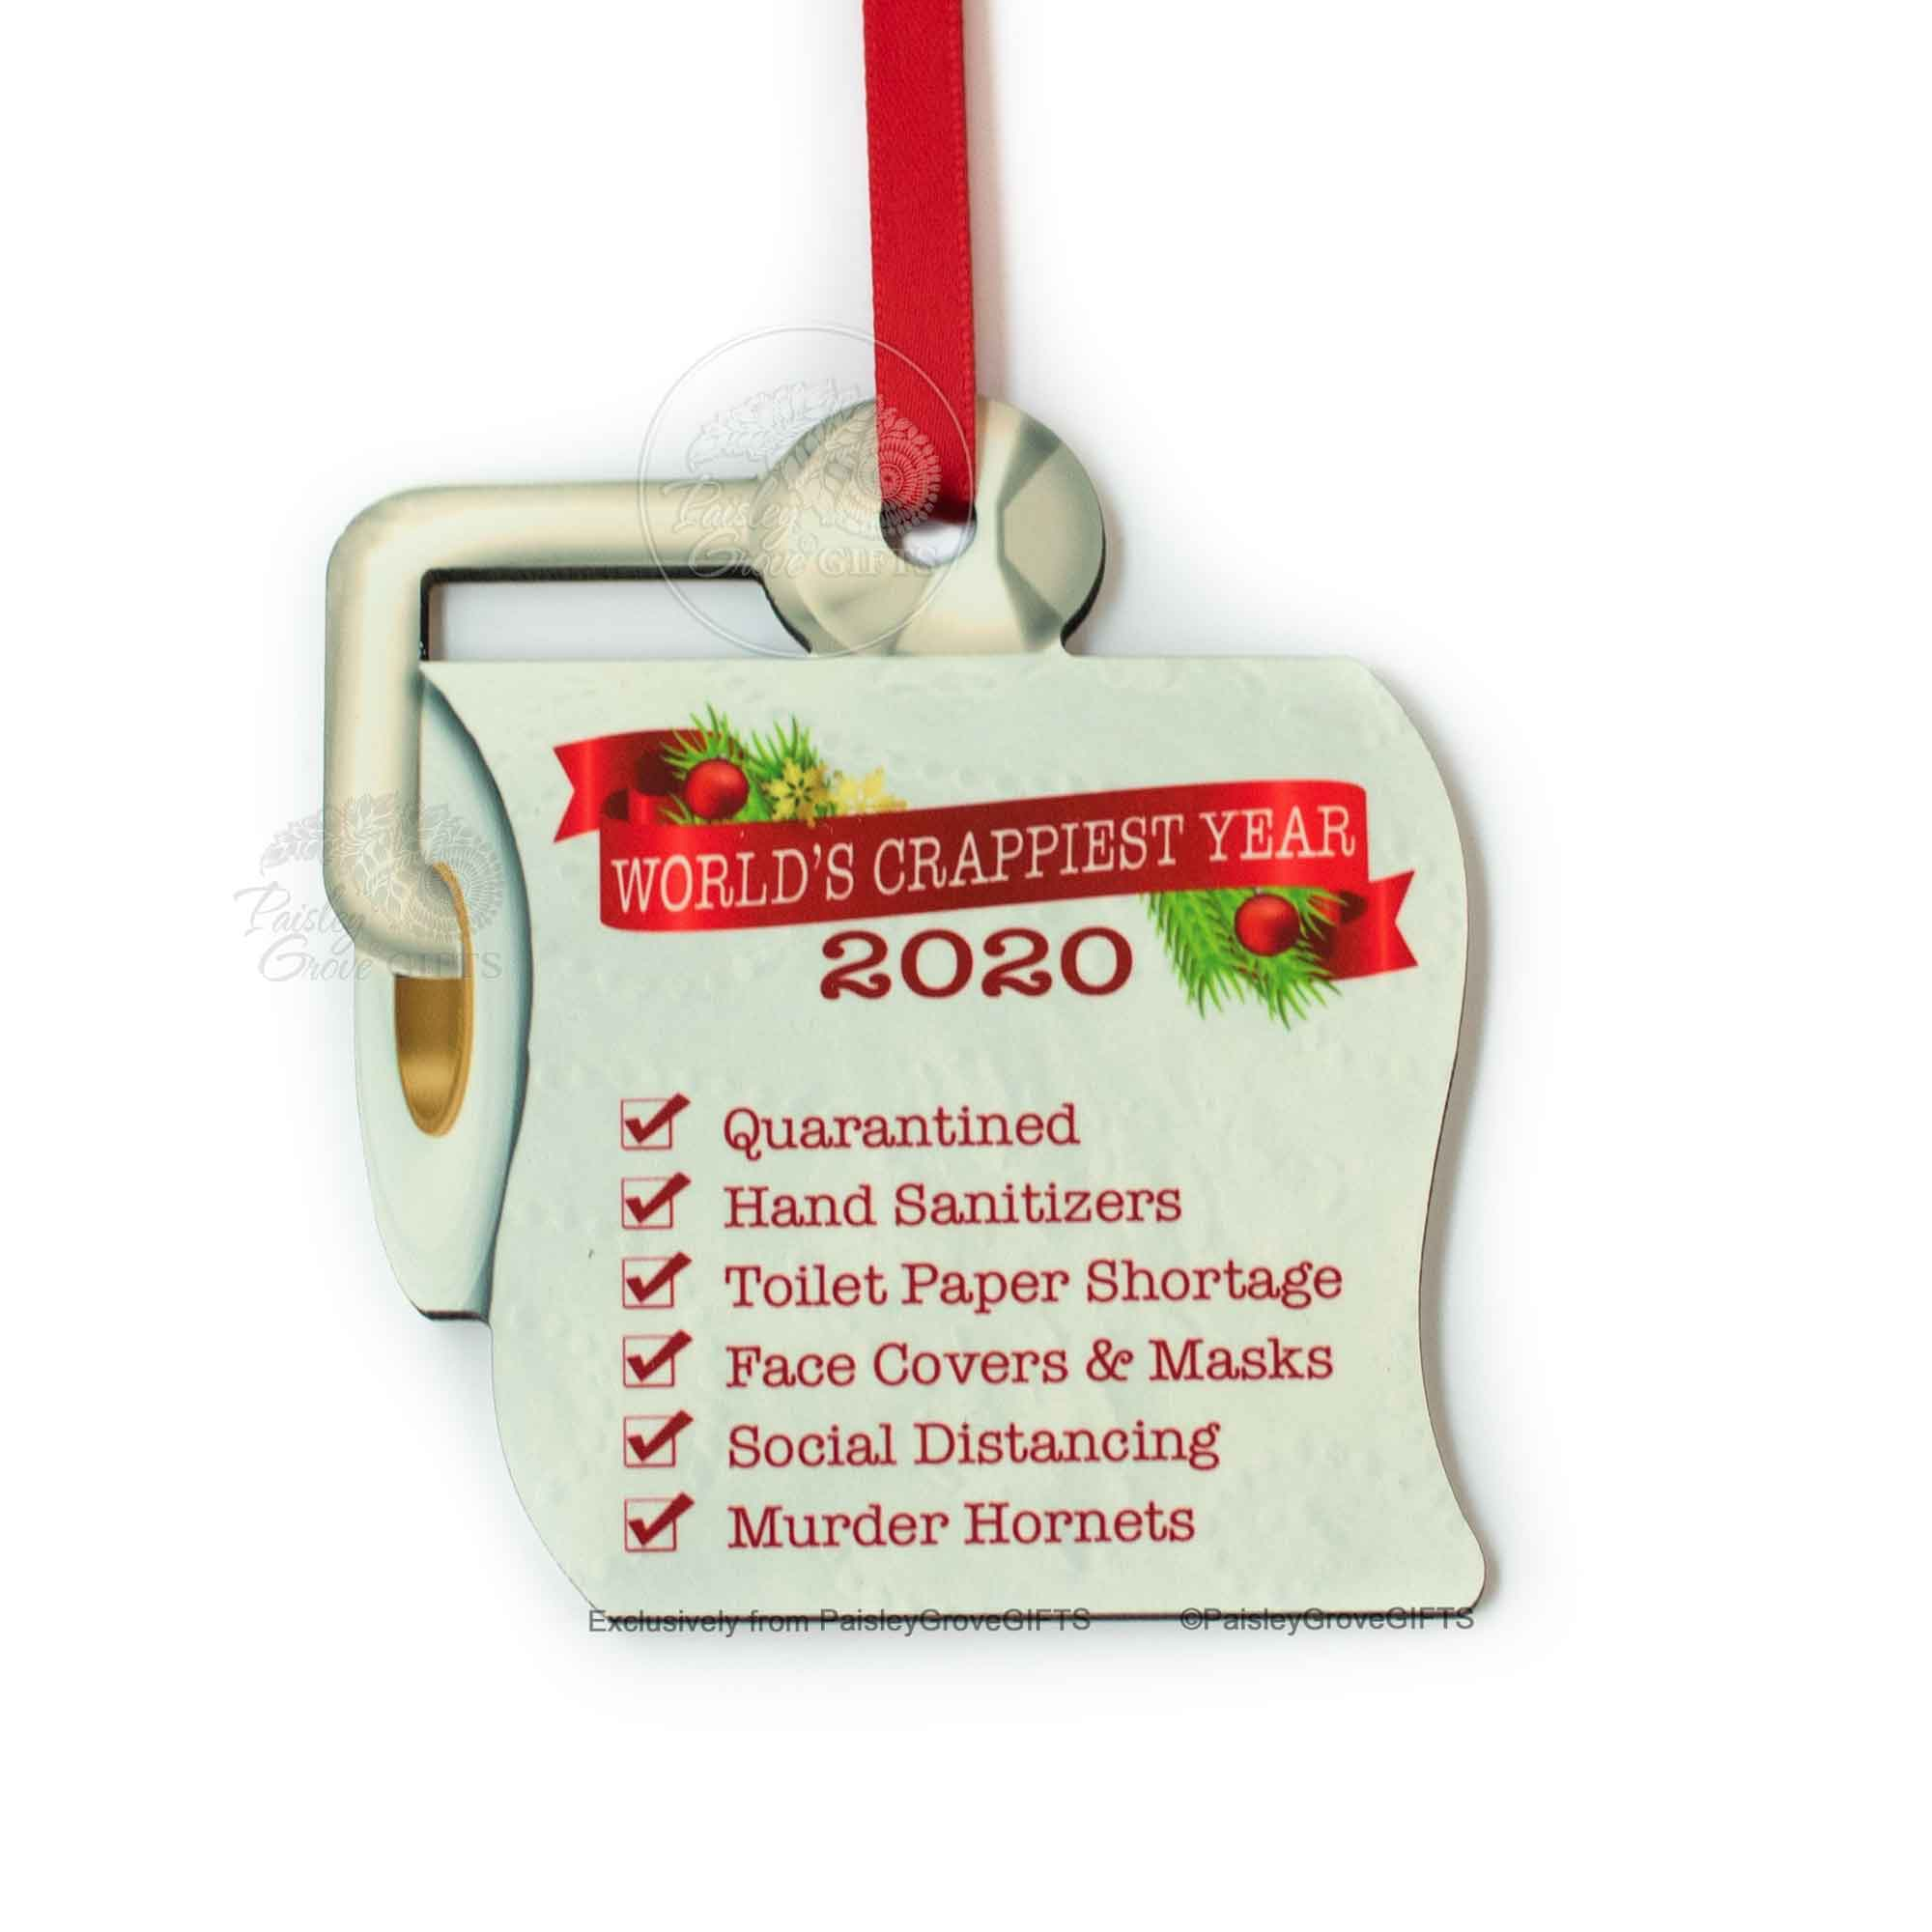 Copyright PaisleyGroveGIFTS S525b Funny Toilet Paper Christmas Ornament 2020 Worlds Crappiest Year with List of Major Events